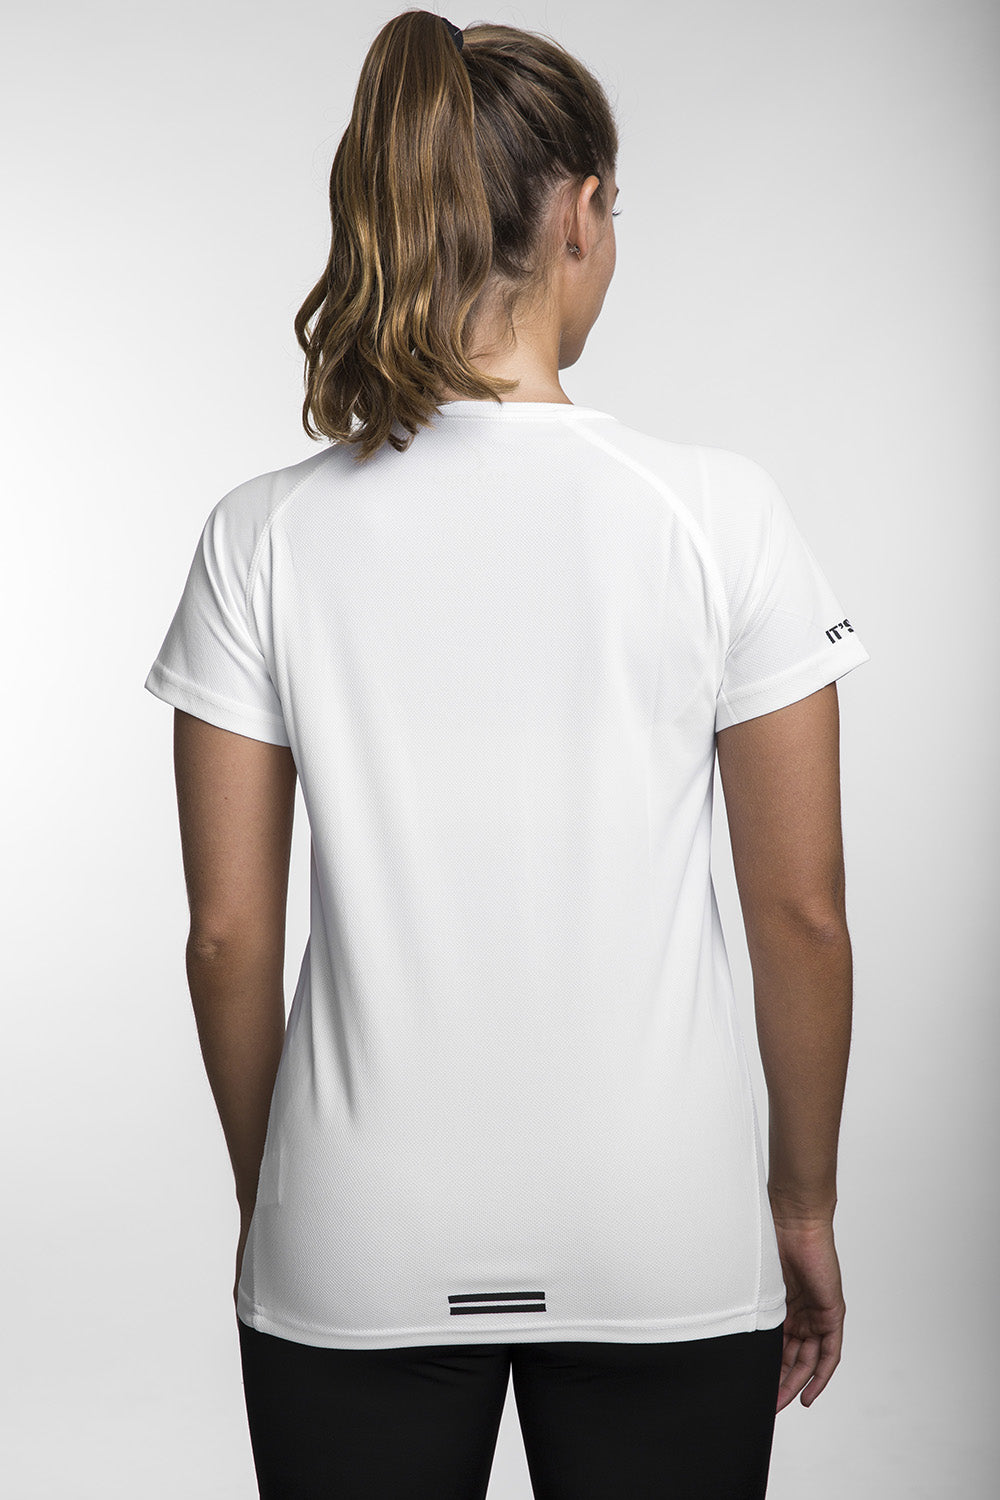 Women's Lightweight Running T-Shirt - White